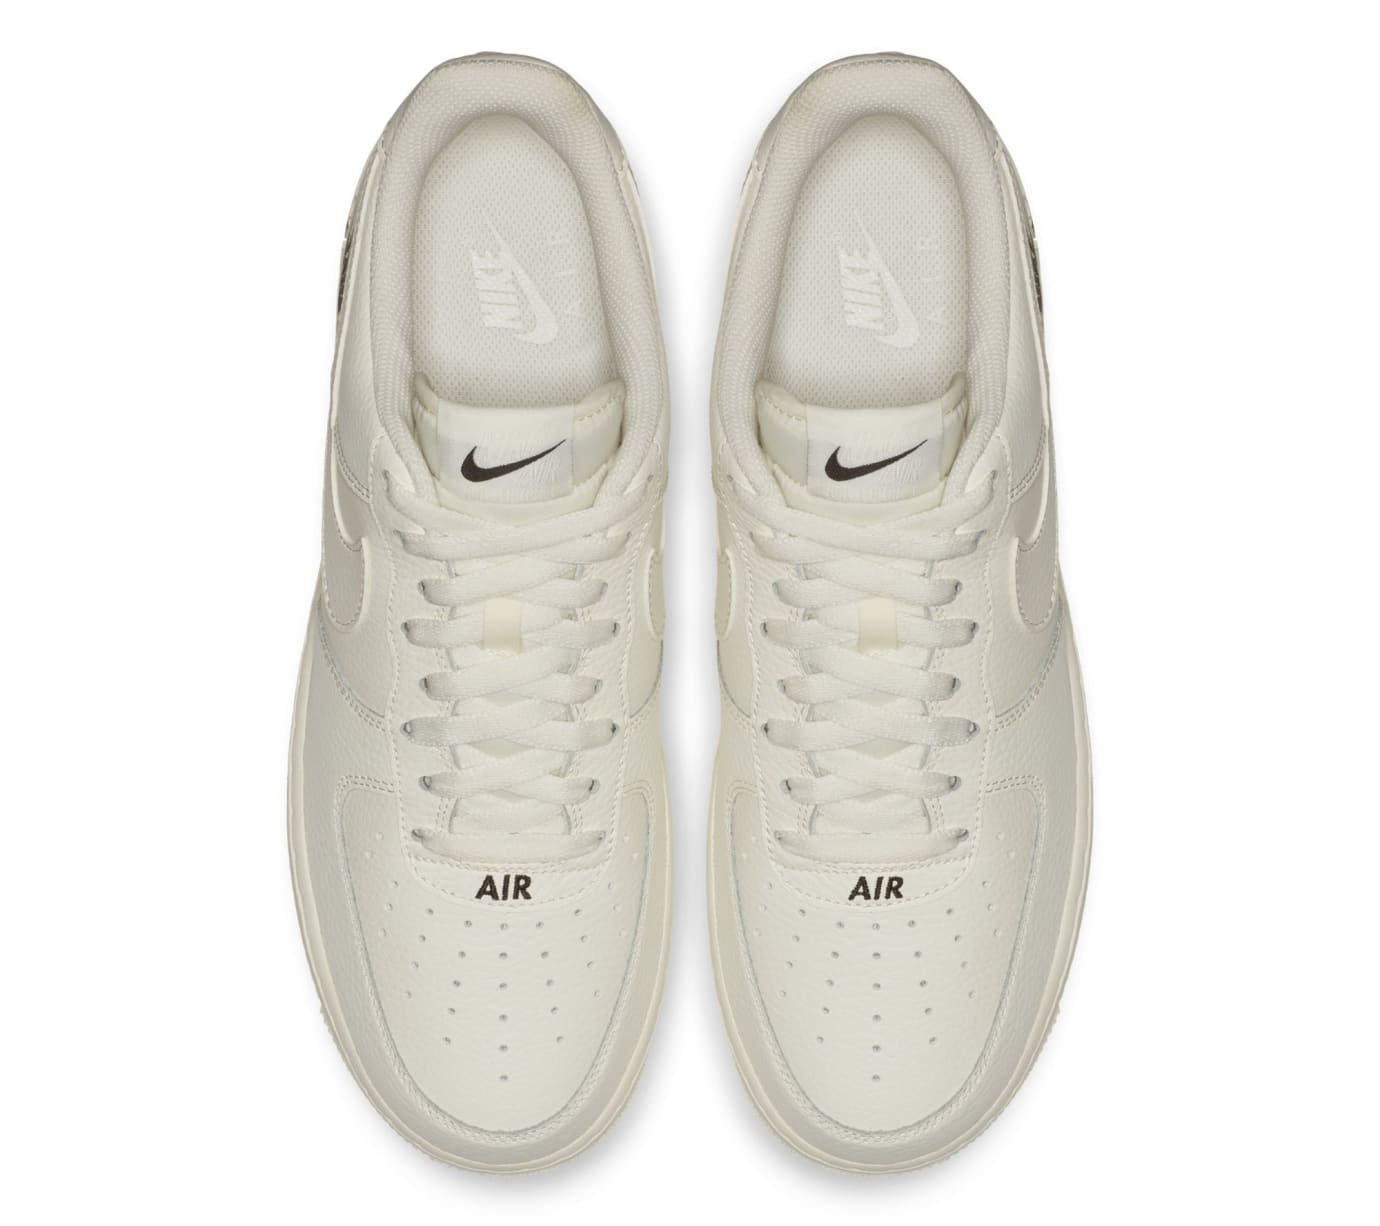 Nike Air Force 1 07 LTHR 'Sail' (Top)